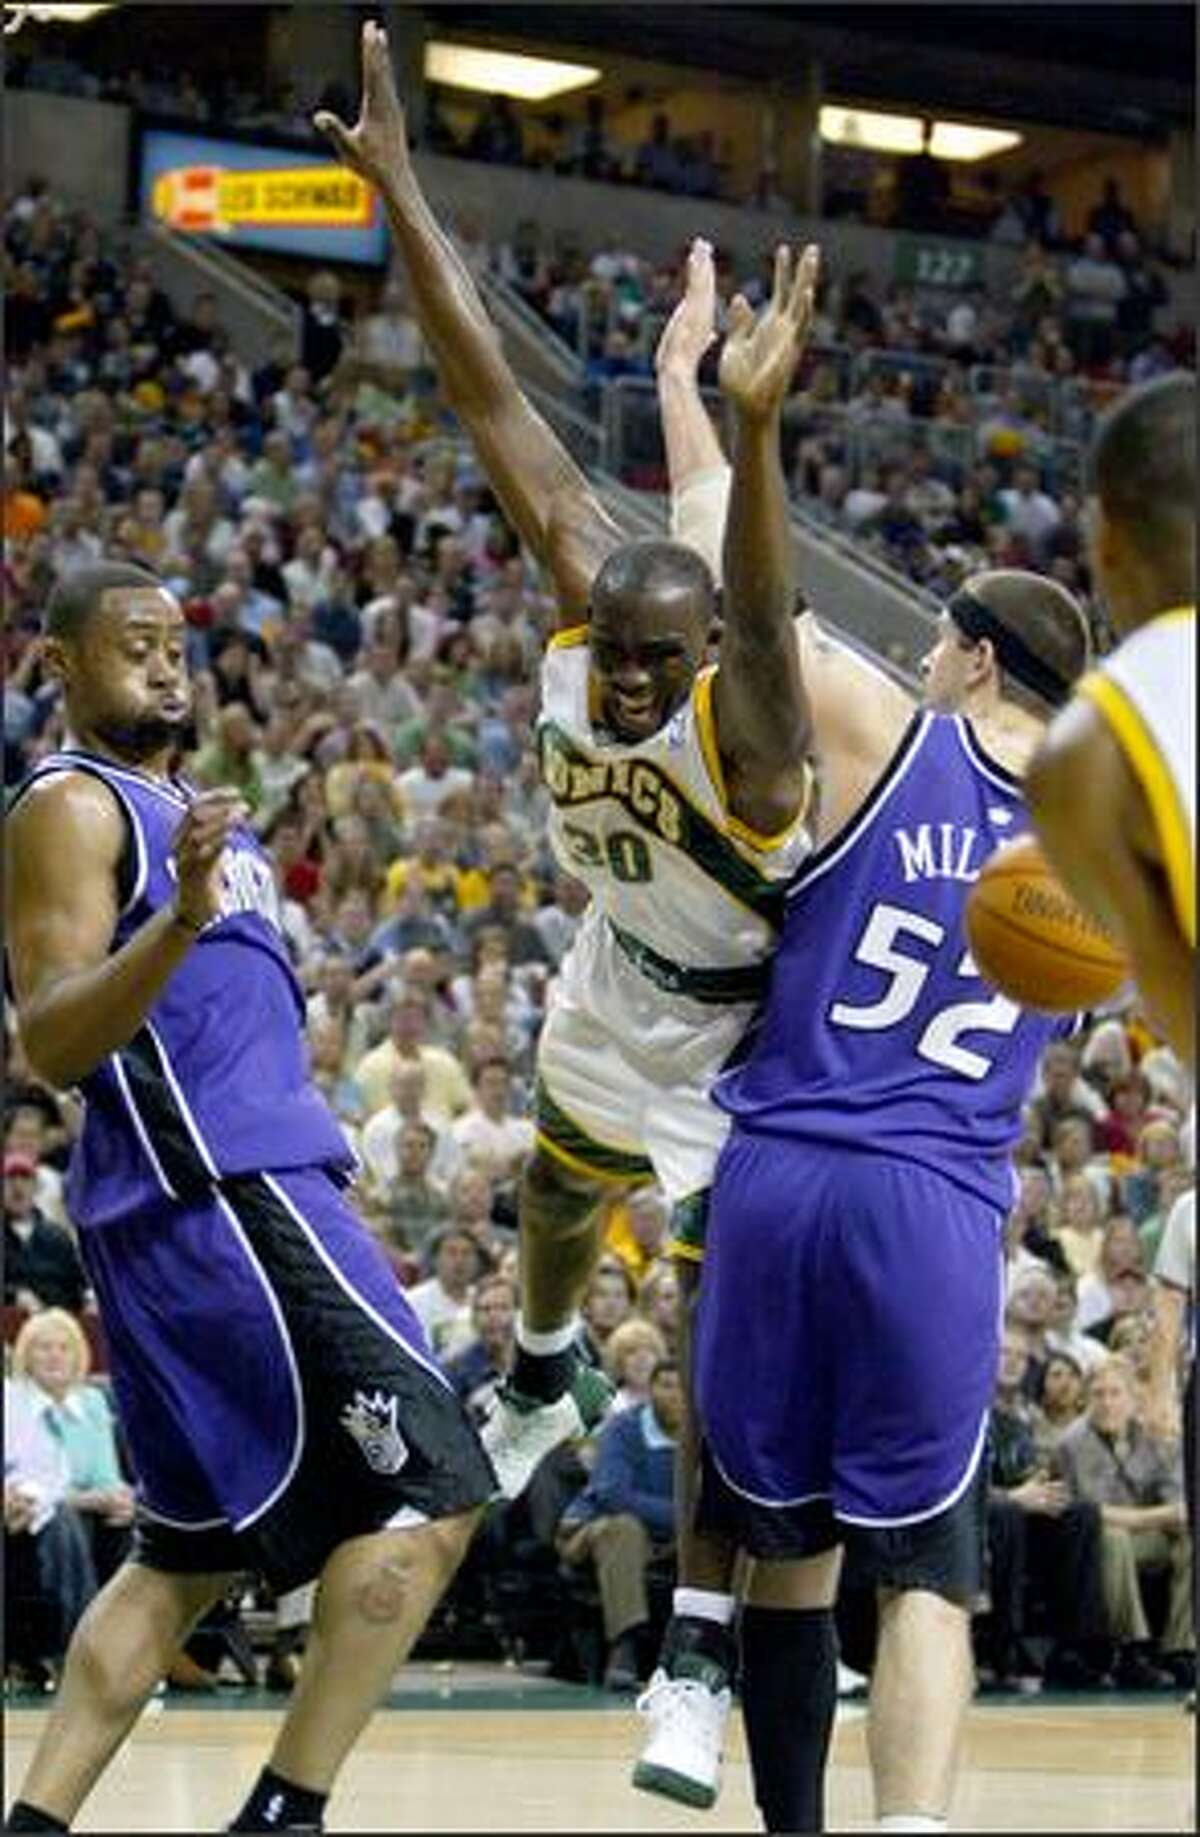 The Sonics' Reggie Evans goes airborne as he is fouled by Sacramento's Brad Miller, right.